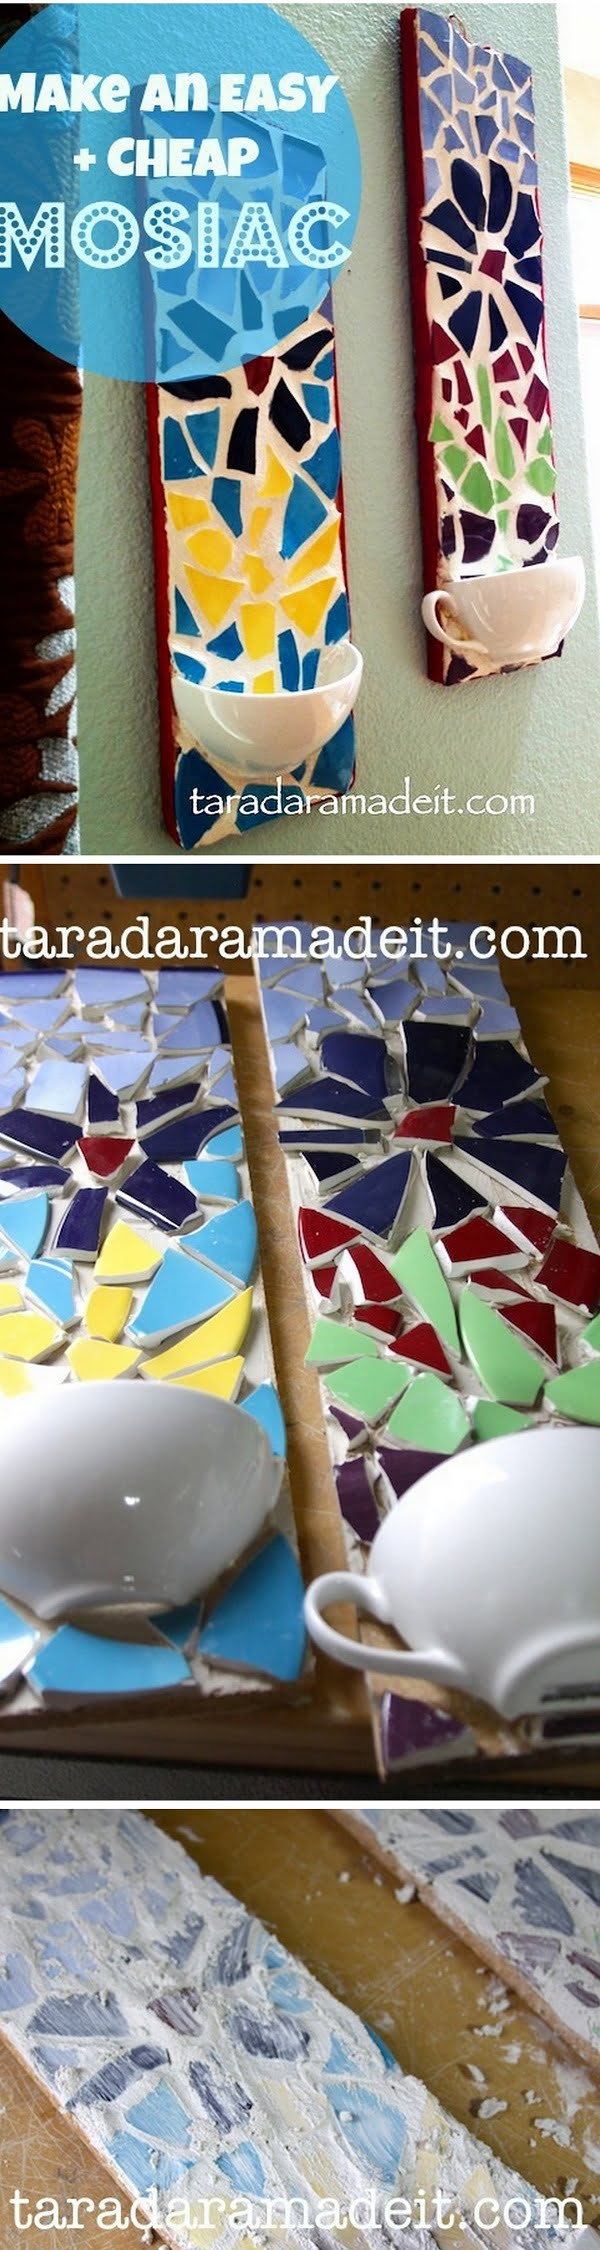 30 Stunning DIY Mosaic Craft Projects for Easy Home Decor - Check out this easy idea on how to make a #DIY mosaic wall decor #homedecor on a #budget #crafts #project